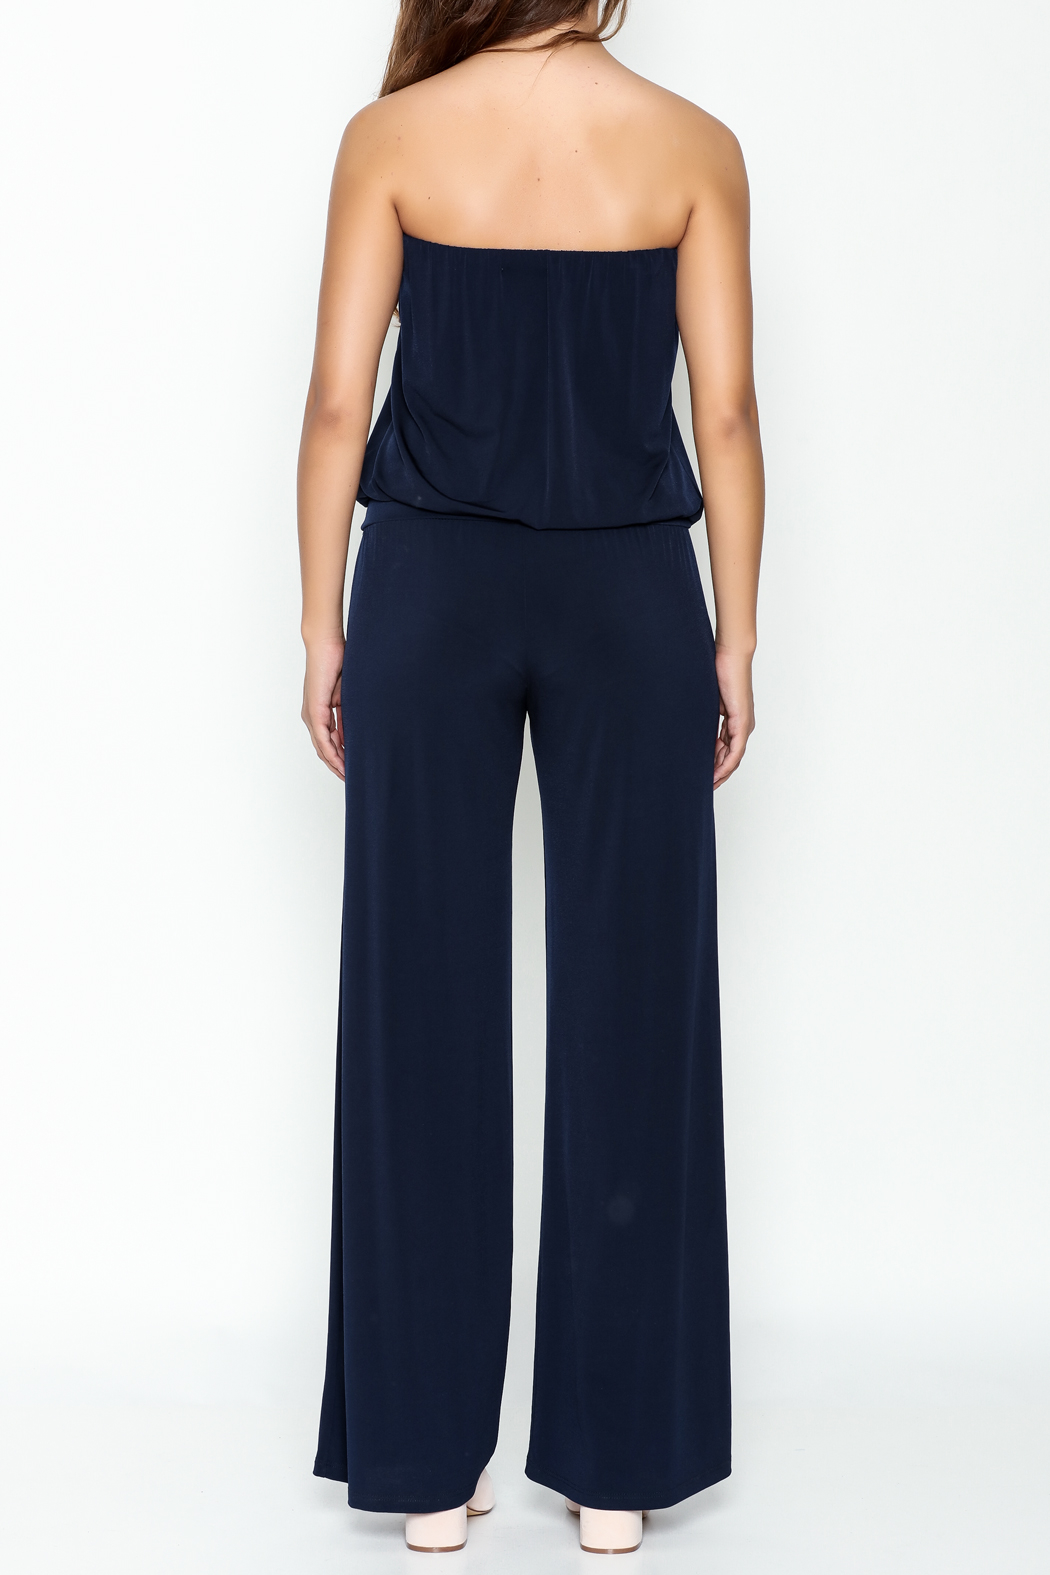 Veronica M Jane Jumpsuit - Back Cropped Image